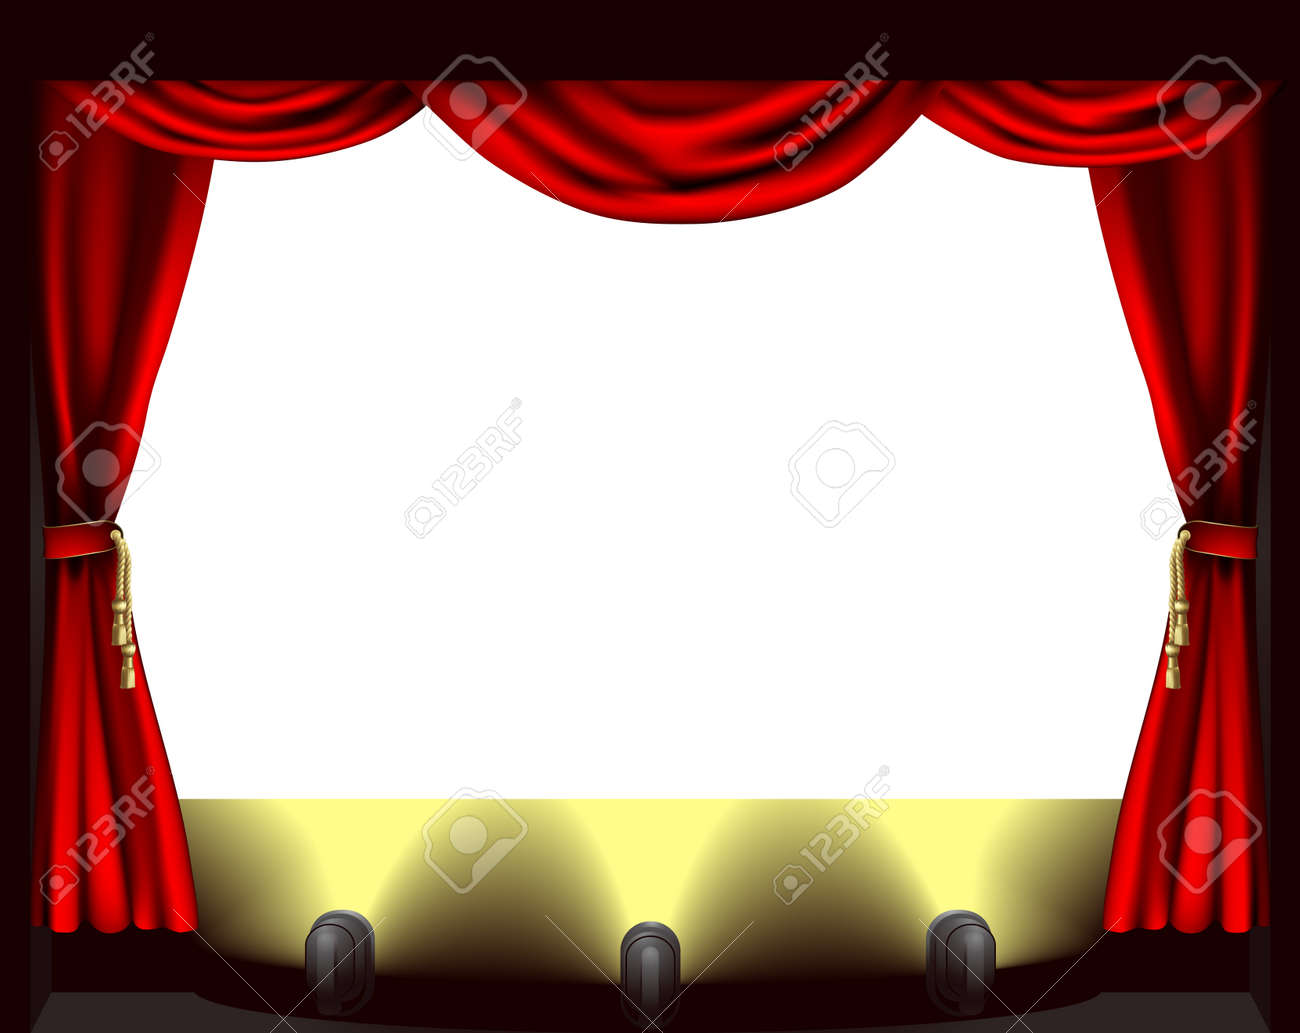 Red stage curtain with lights - A Theatre Stage Lights And Curtain Illustration Stock Vector 10804337